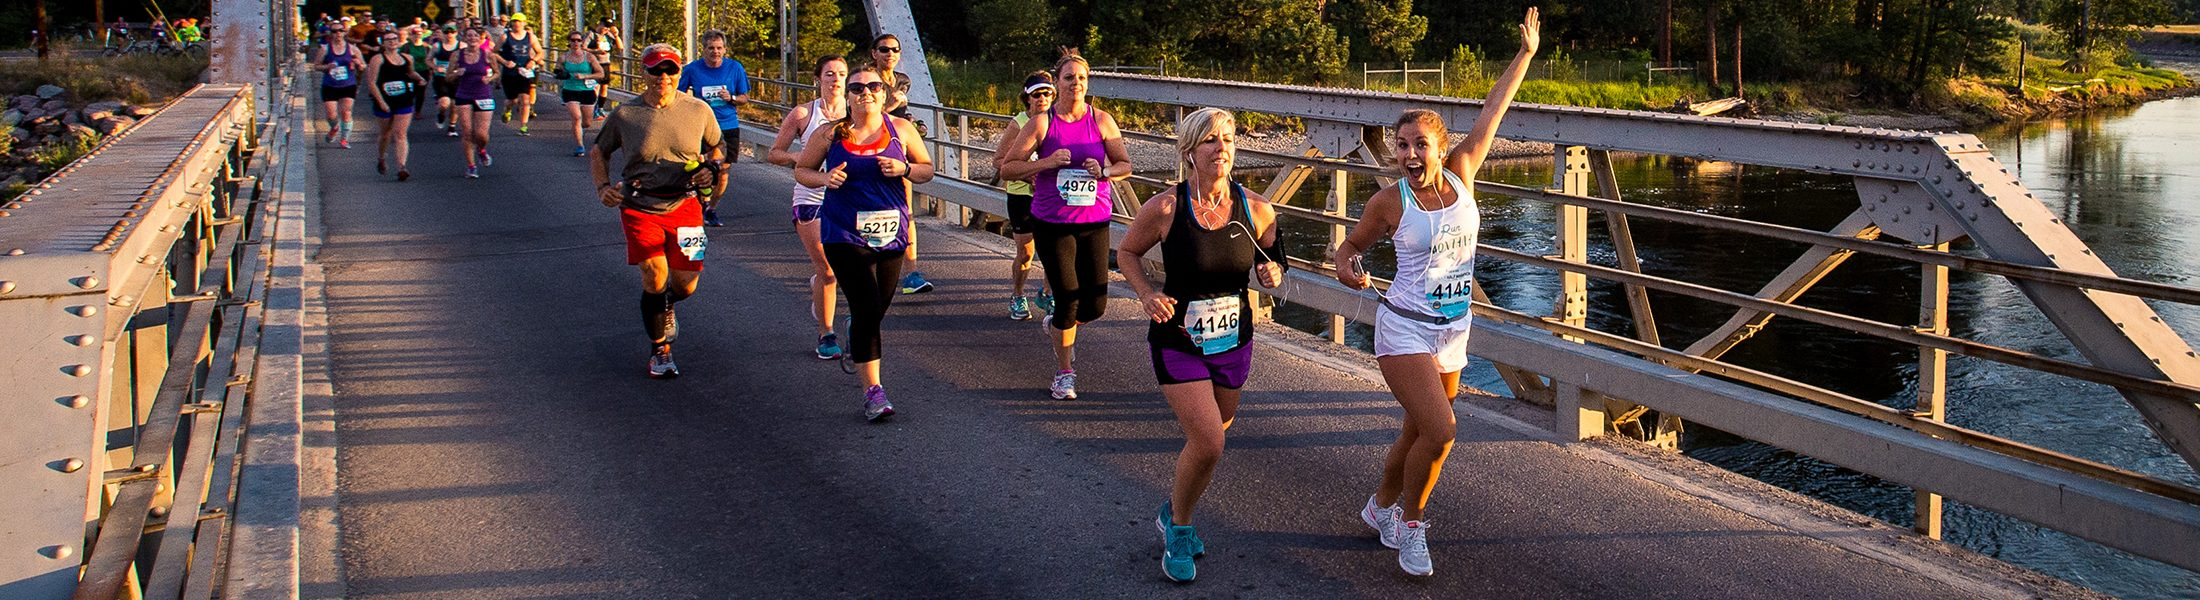 Missoula Marathon Lands #1 Spot Two Years in a Row